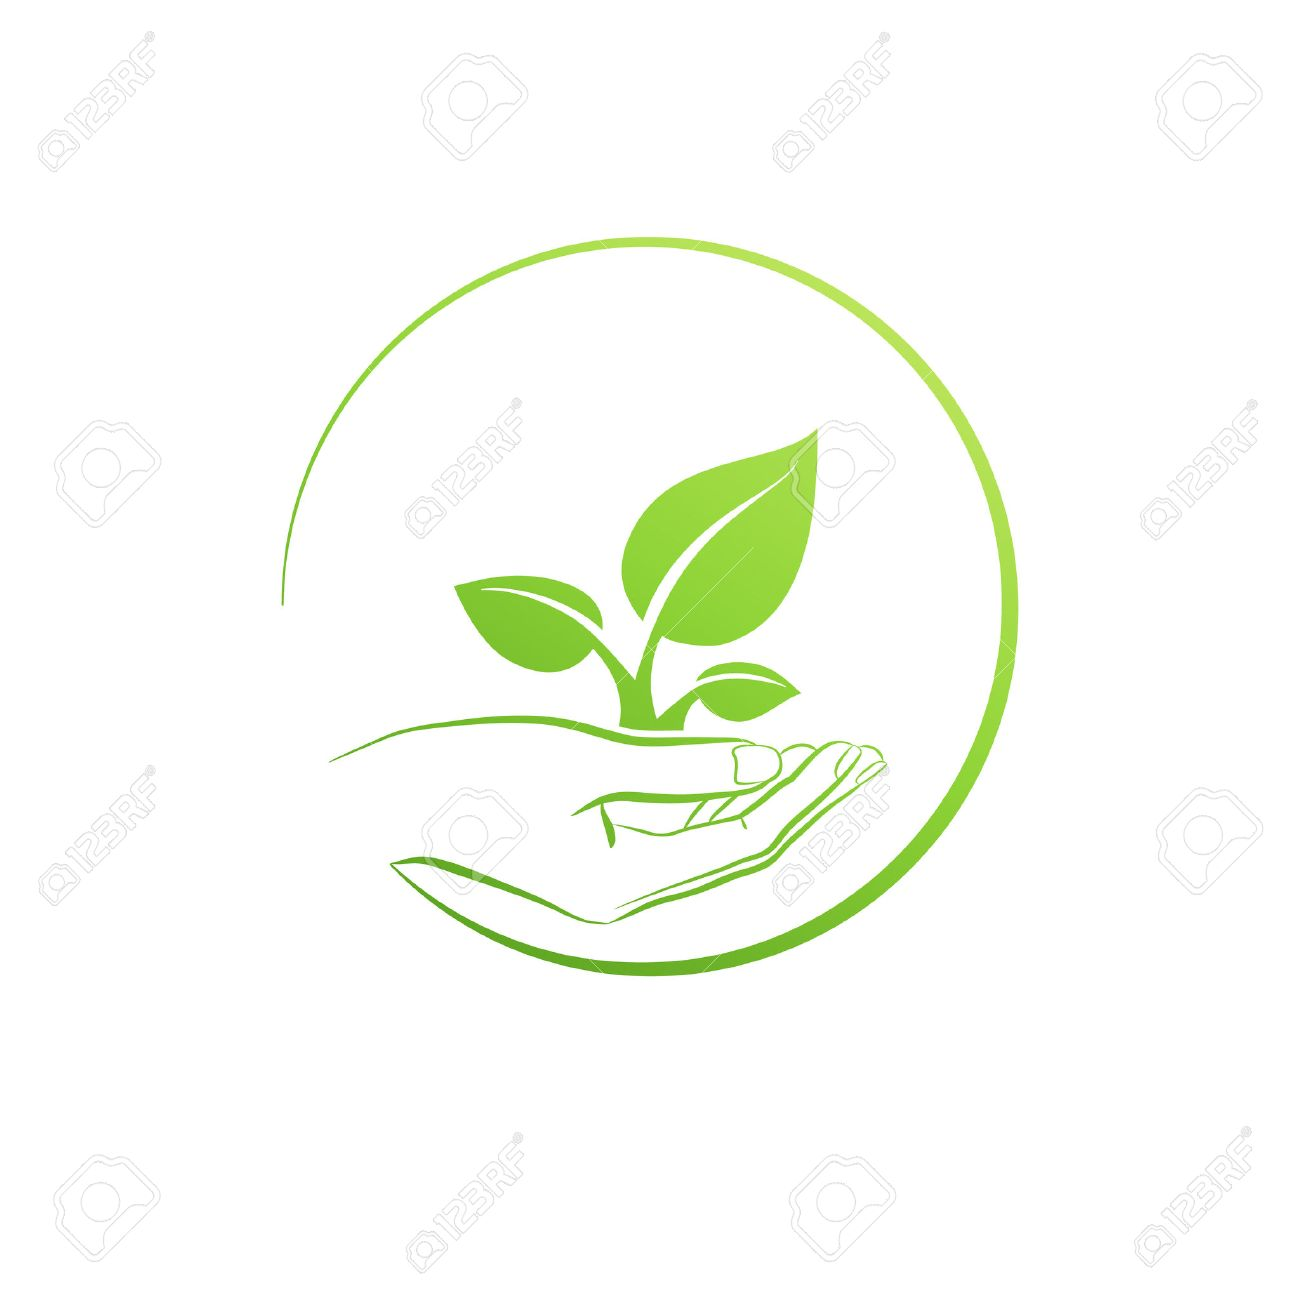 Hand holding plant, icon growth concept vector illustration - 36175132